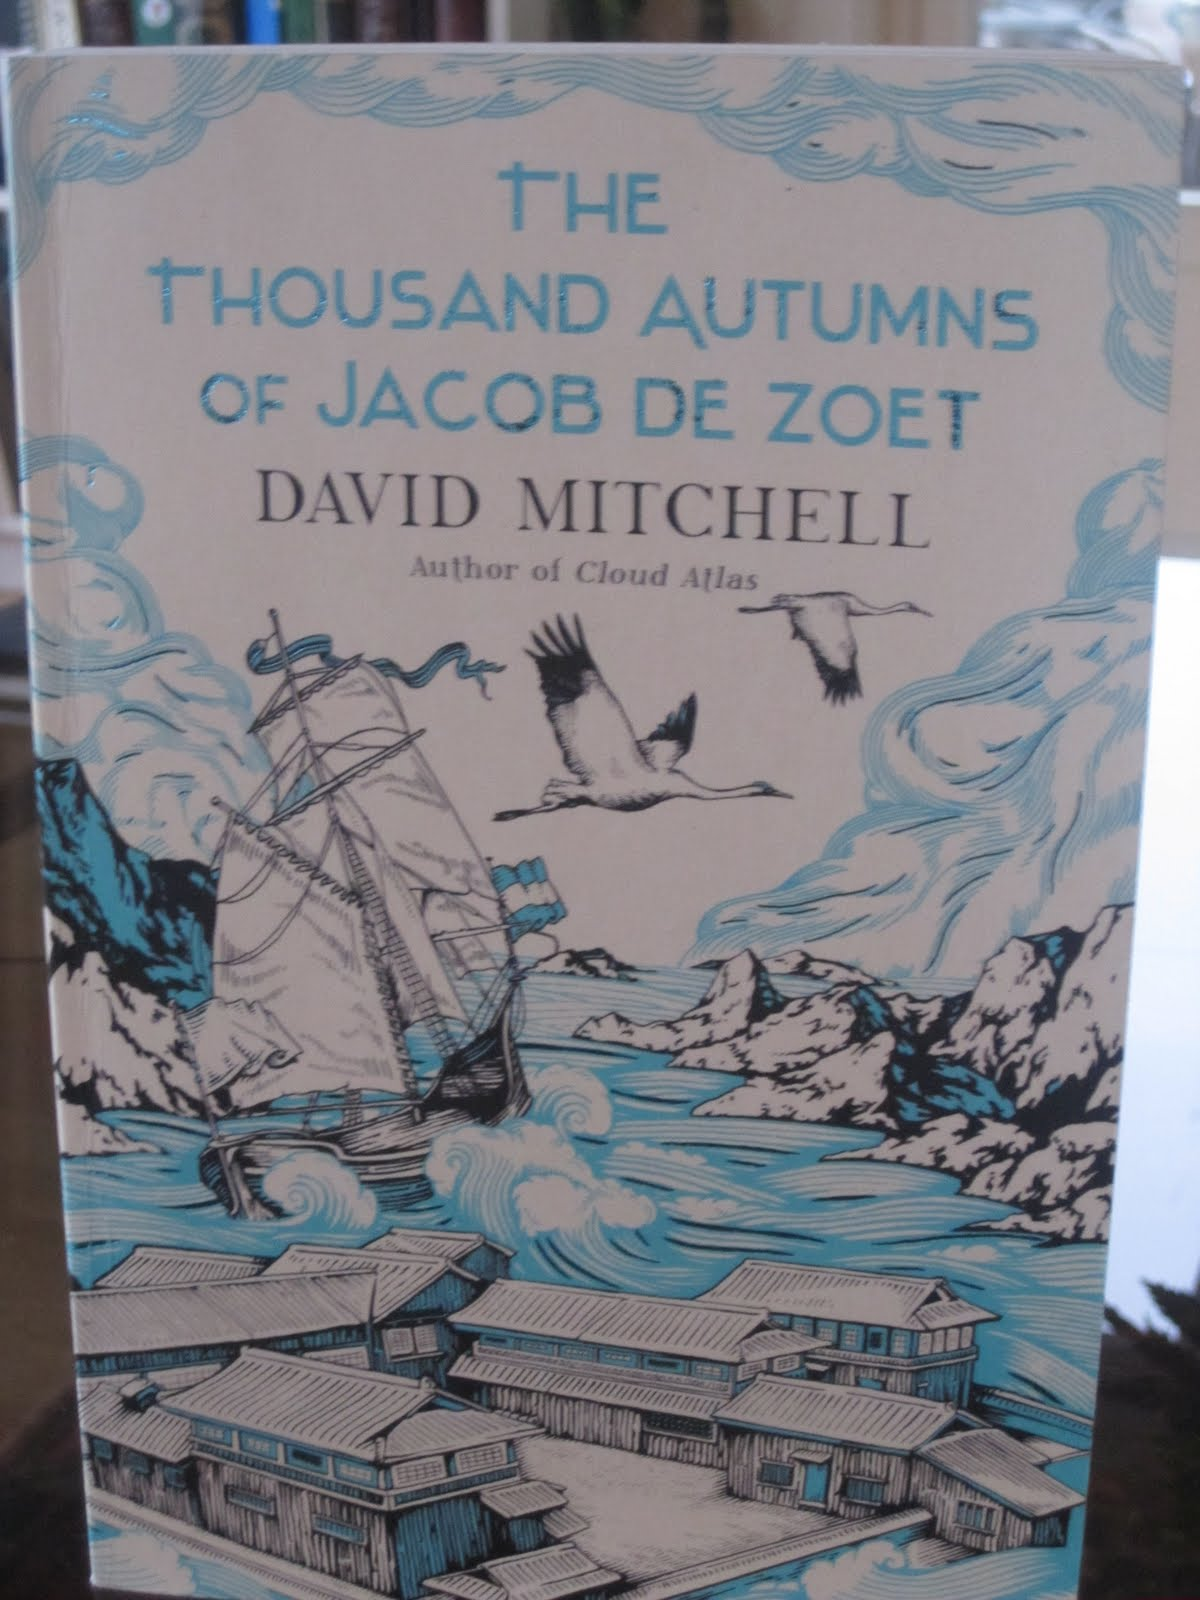 Minleseglede: David Mitchell: The Thousand Autumns of ...